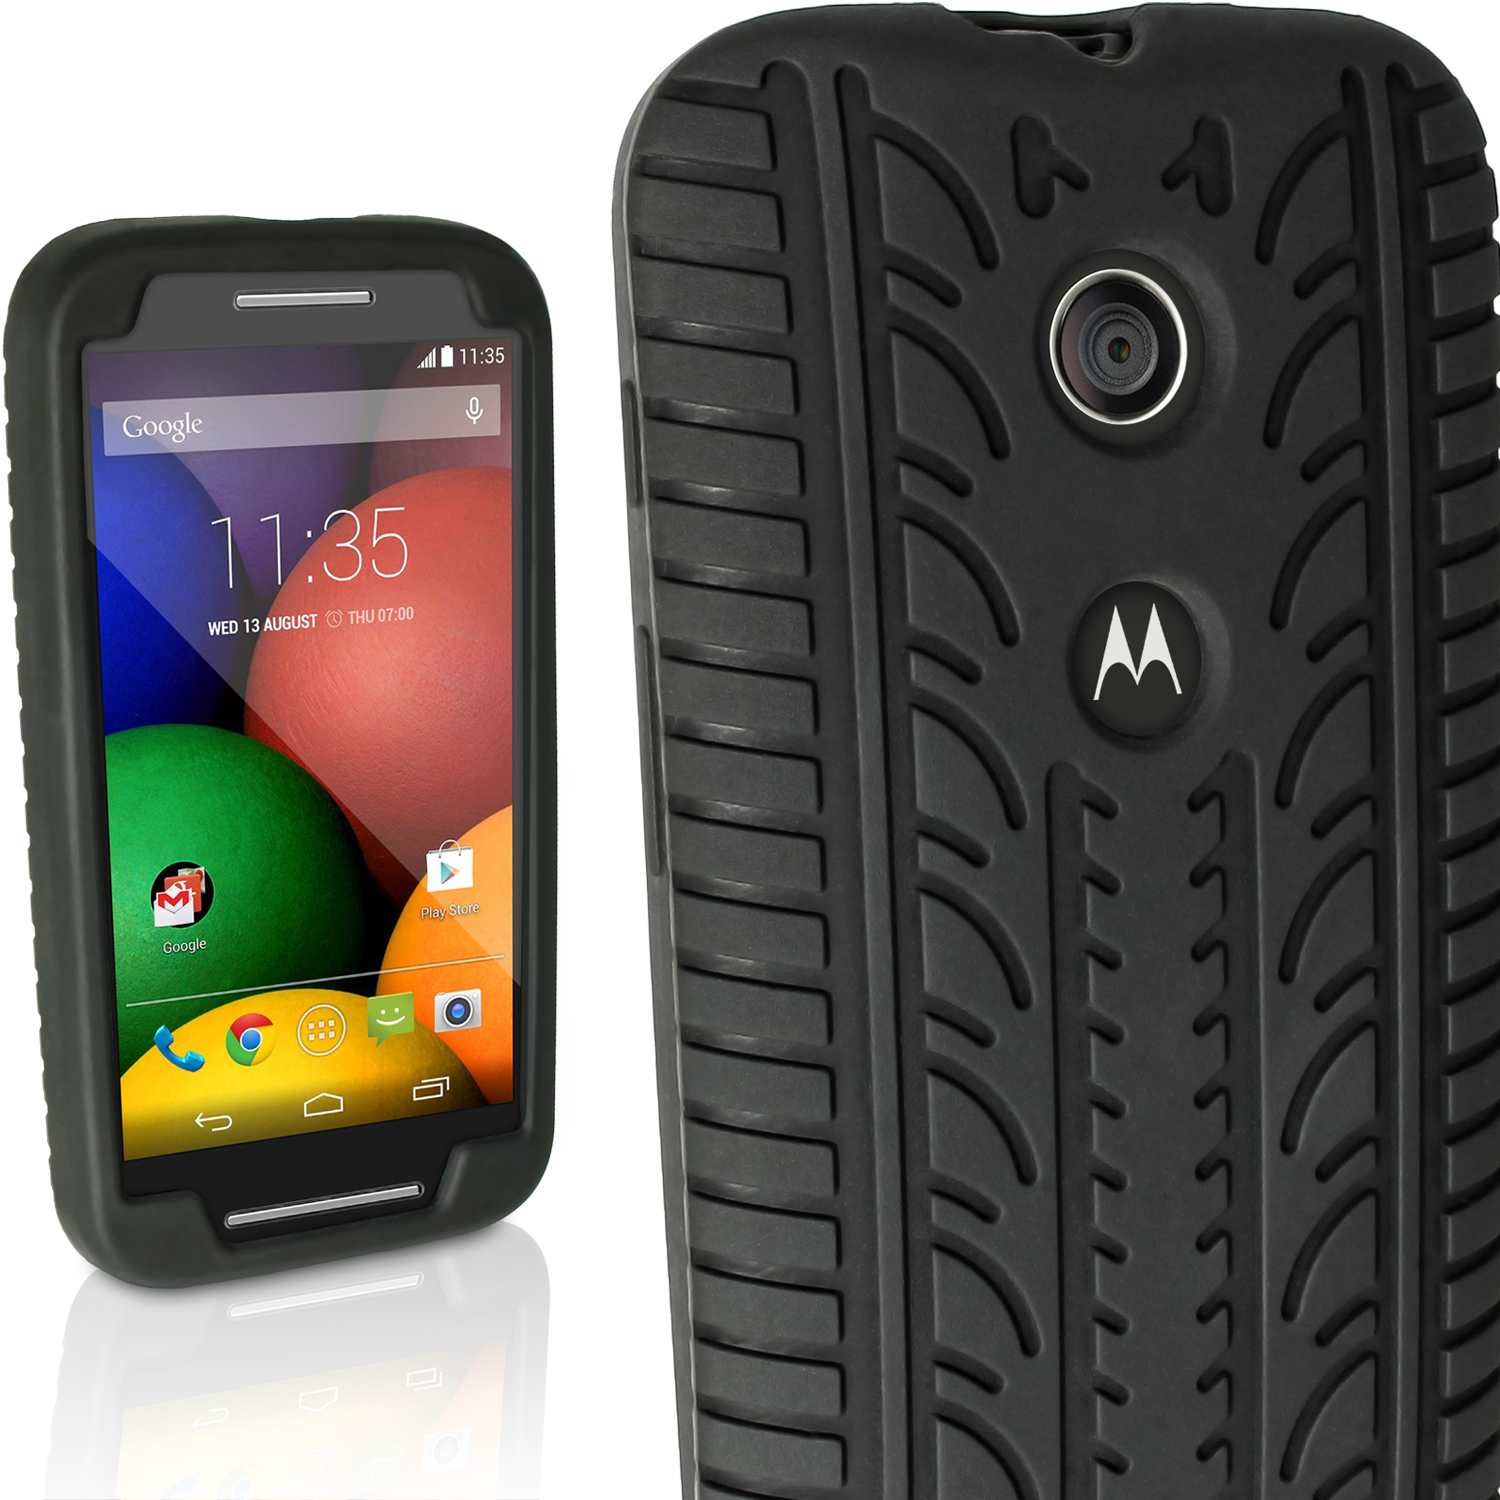 67f61c7e0b8 Custom made silicone case for your Motorola Moto E XT1021 XT1022 XT1025 4GB  3G Android Smartphone. Provides protection against chips and scratches.